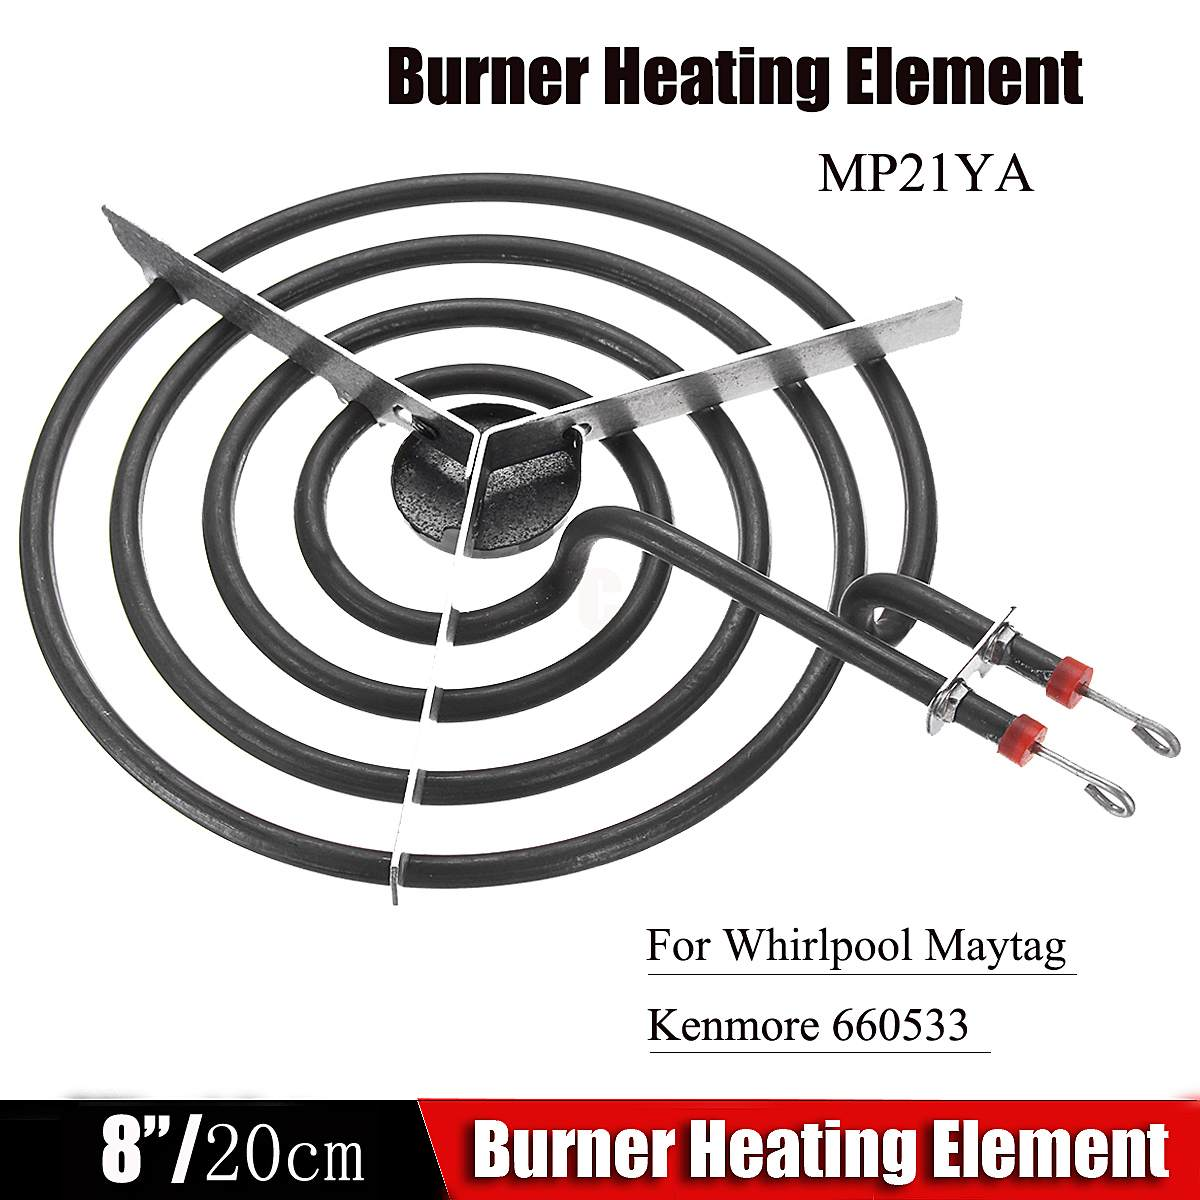 Four Rings Mosquito MP21YA Coil Type Heating Tube Electric Range Burner Element Unit 8inch for Whirlpool Maytag KenmoreFour Rings Mosquito MP21YA Coil Type Heating Tube Electric Range Burner Element Unit 8inch for Whirlpool Maytag Kenmore